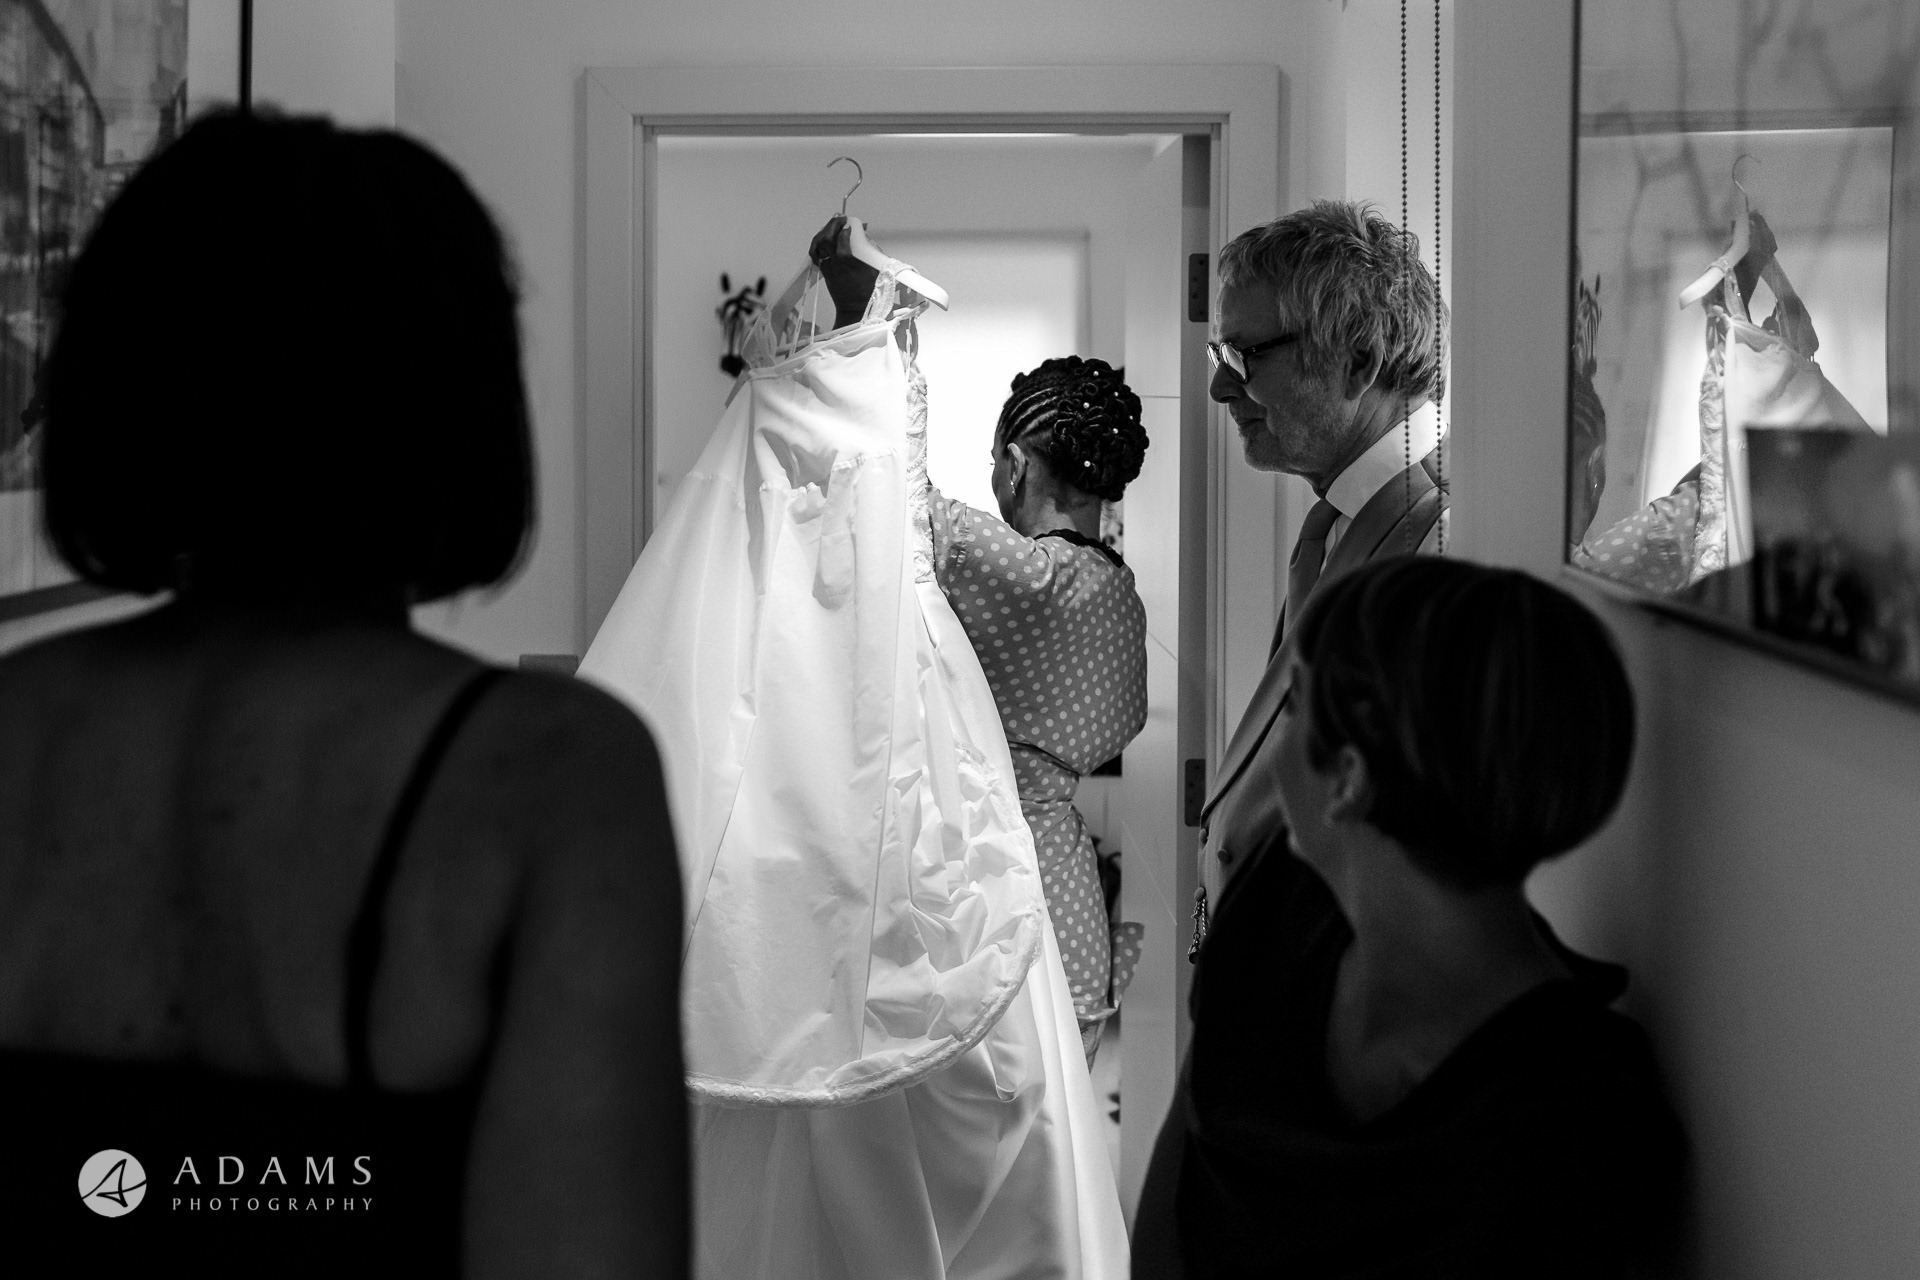 a bride is carrying her wedding dress